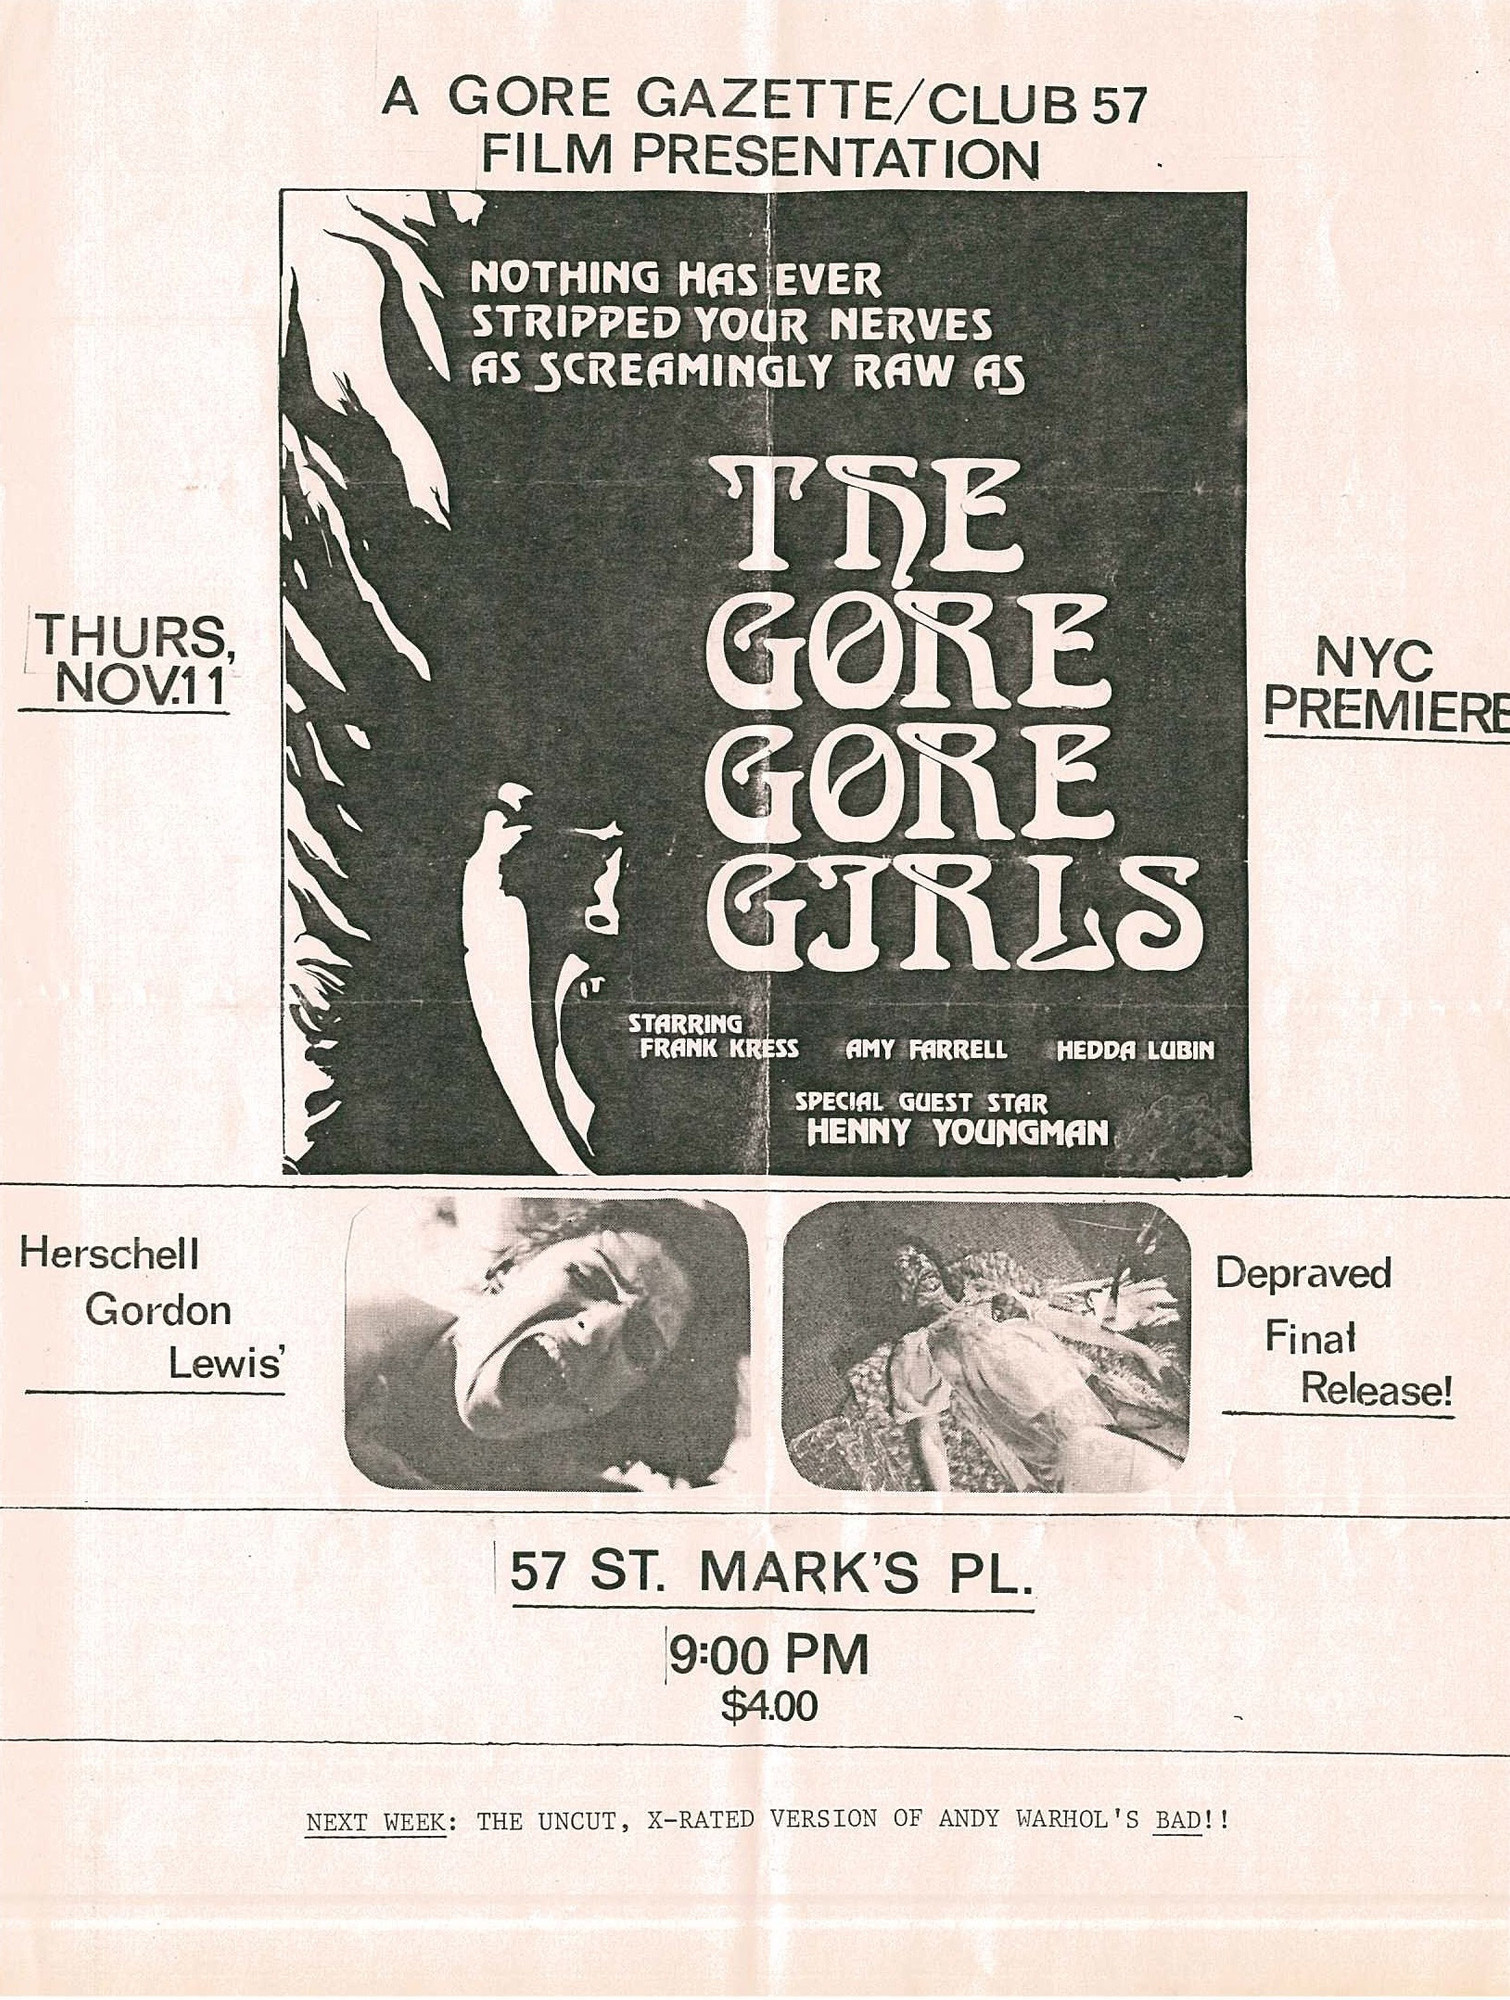 Flyer for a Club 57 screening of The Gore Gore Girls. 1972. USA. Directed by Herschell Gordon Lewis